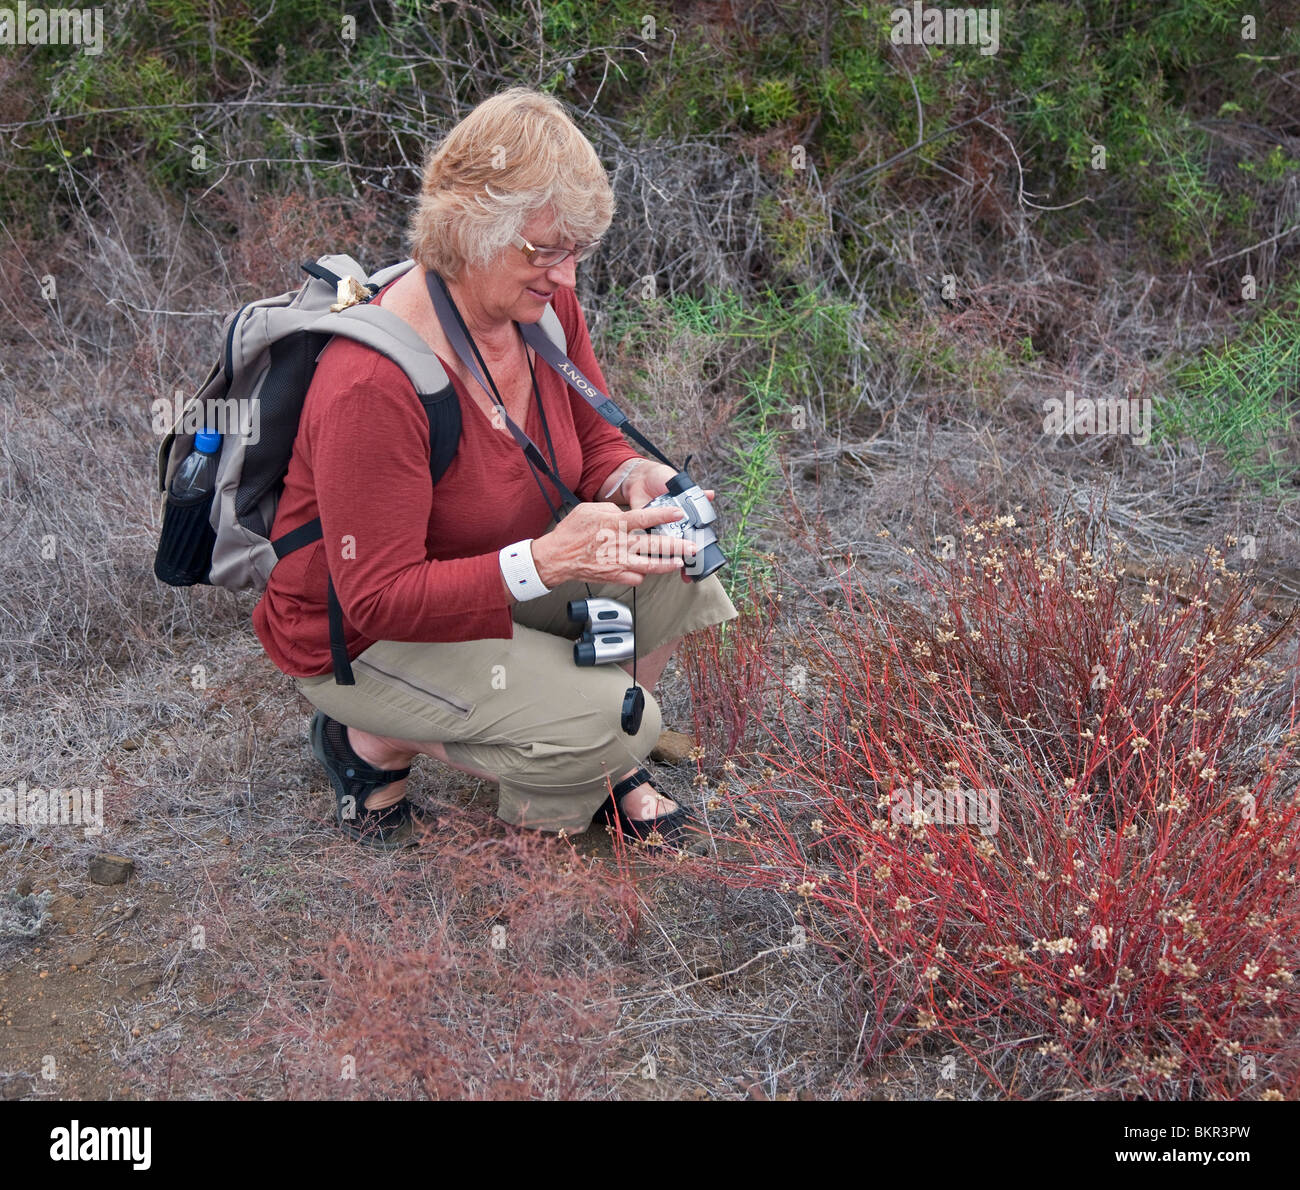 Galapagos Islands, A visitor to Santiago Island photographs the herbaceous plant Alternanthera spp.. - Stock Image